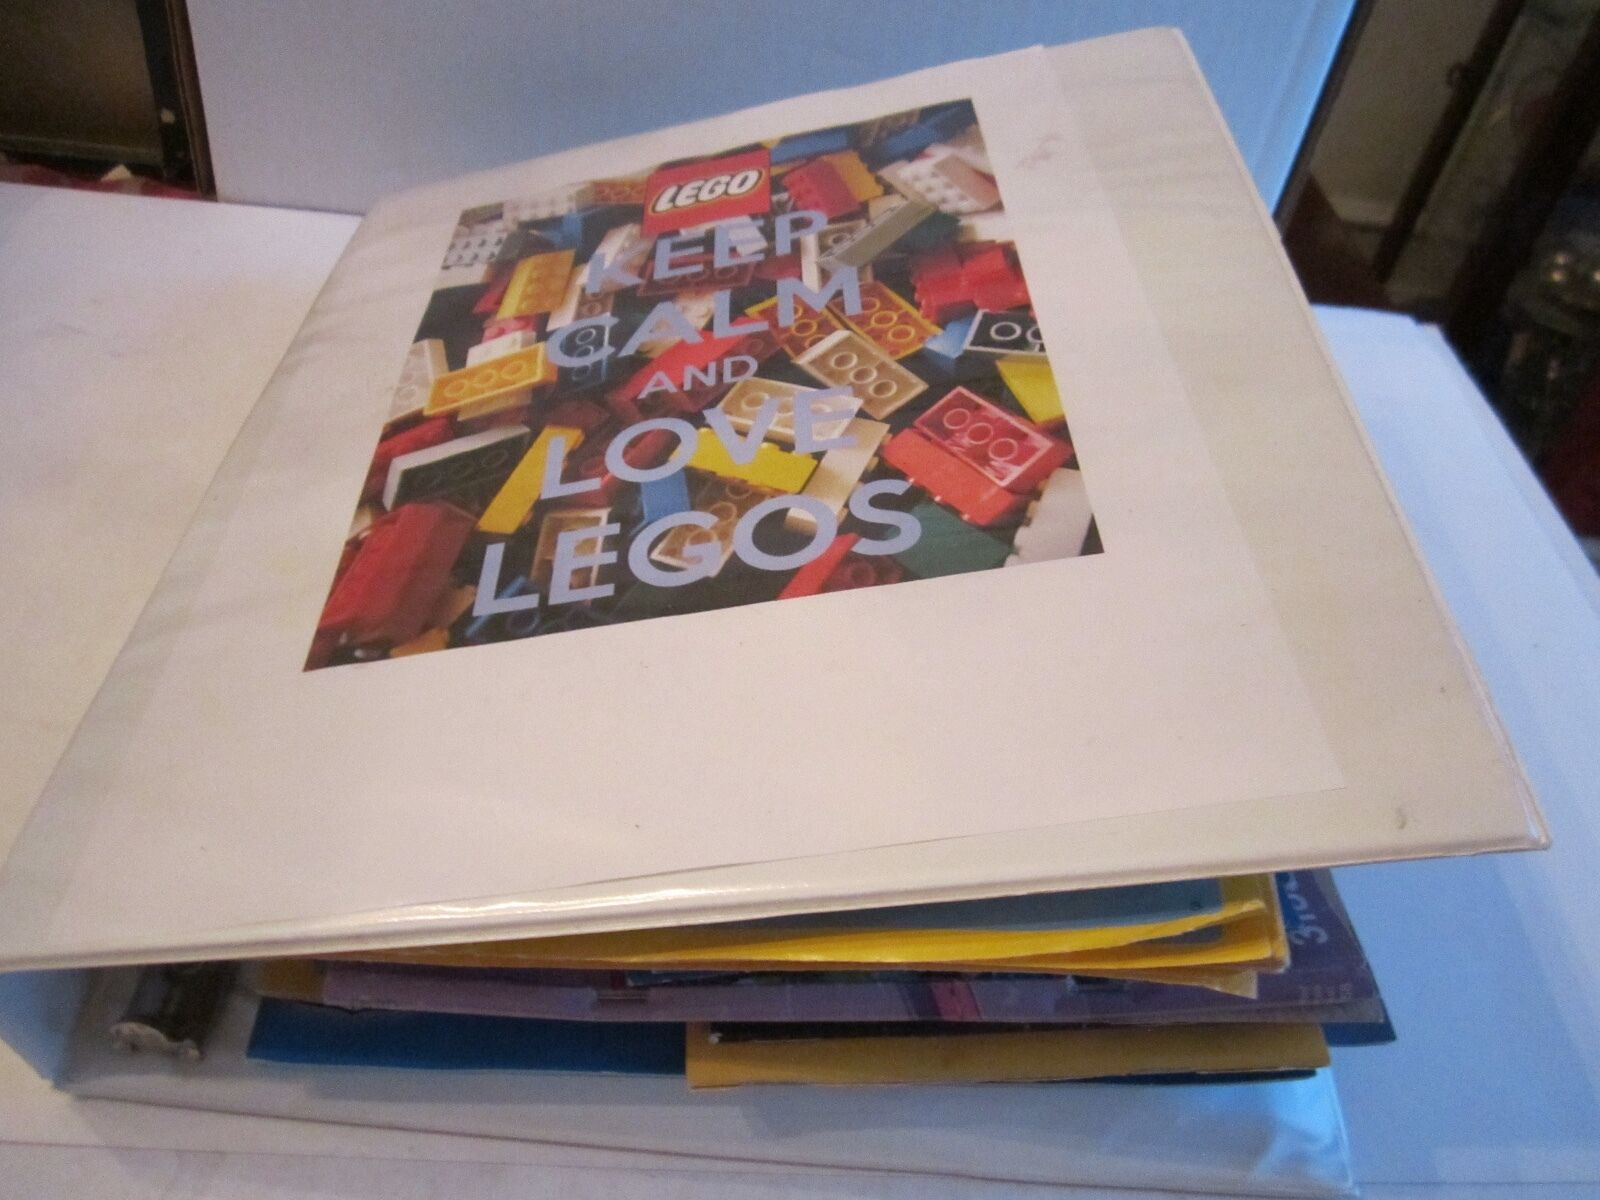 LOT OF 46 LEGO INSTRUCTION MANUALS - IN THE BINDER BINDER BINDER - SEE PICS fc4644